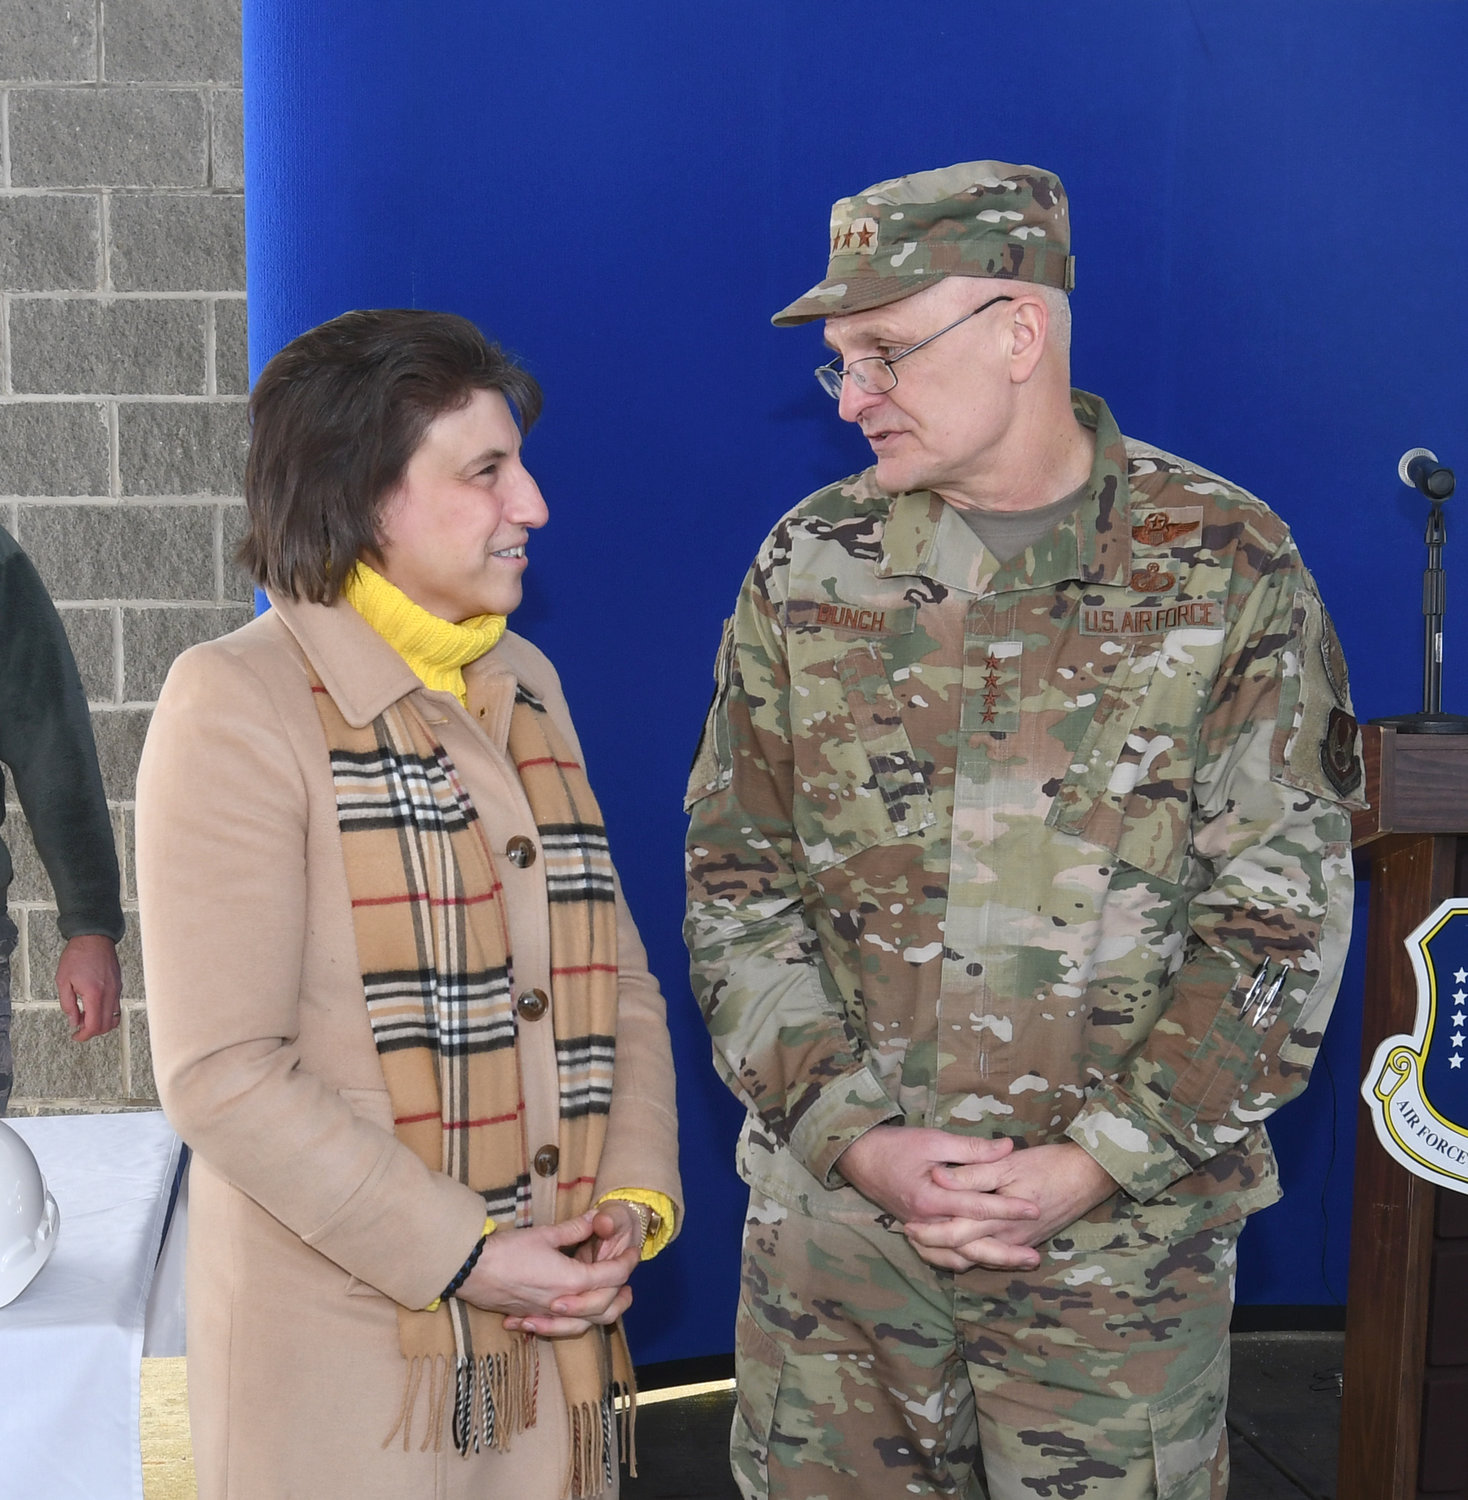 ROME AND MILITARY TOPICS — Rome Mayor Jacqueline M. Izzo talks with four-star Air Force Gen. Arnold W. Bunch, Jr., prior to the start of a groundbreaking ceremony Wednesday for a new perimeter security system at the Air Force's Rome Lab. Bunch is commander of Air Force Materiel Command.